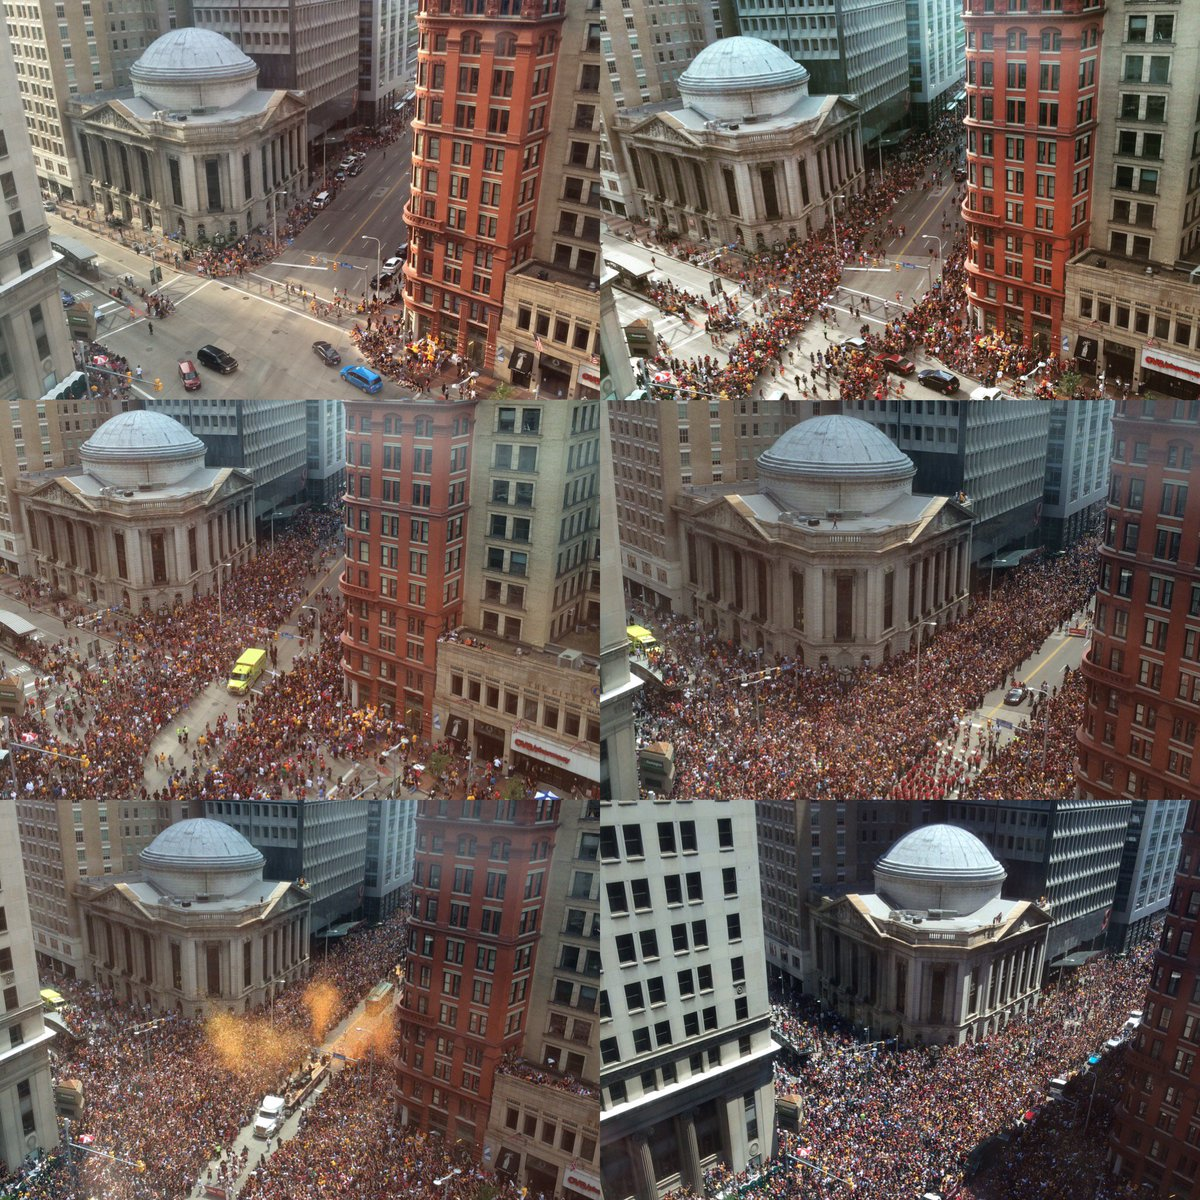 Views throughout the day of the crowds outside our Downtown #Cleveland store for yesterday's championship parade. https://t.co/iq2ct1zpbh